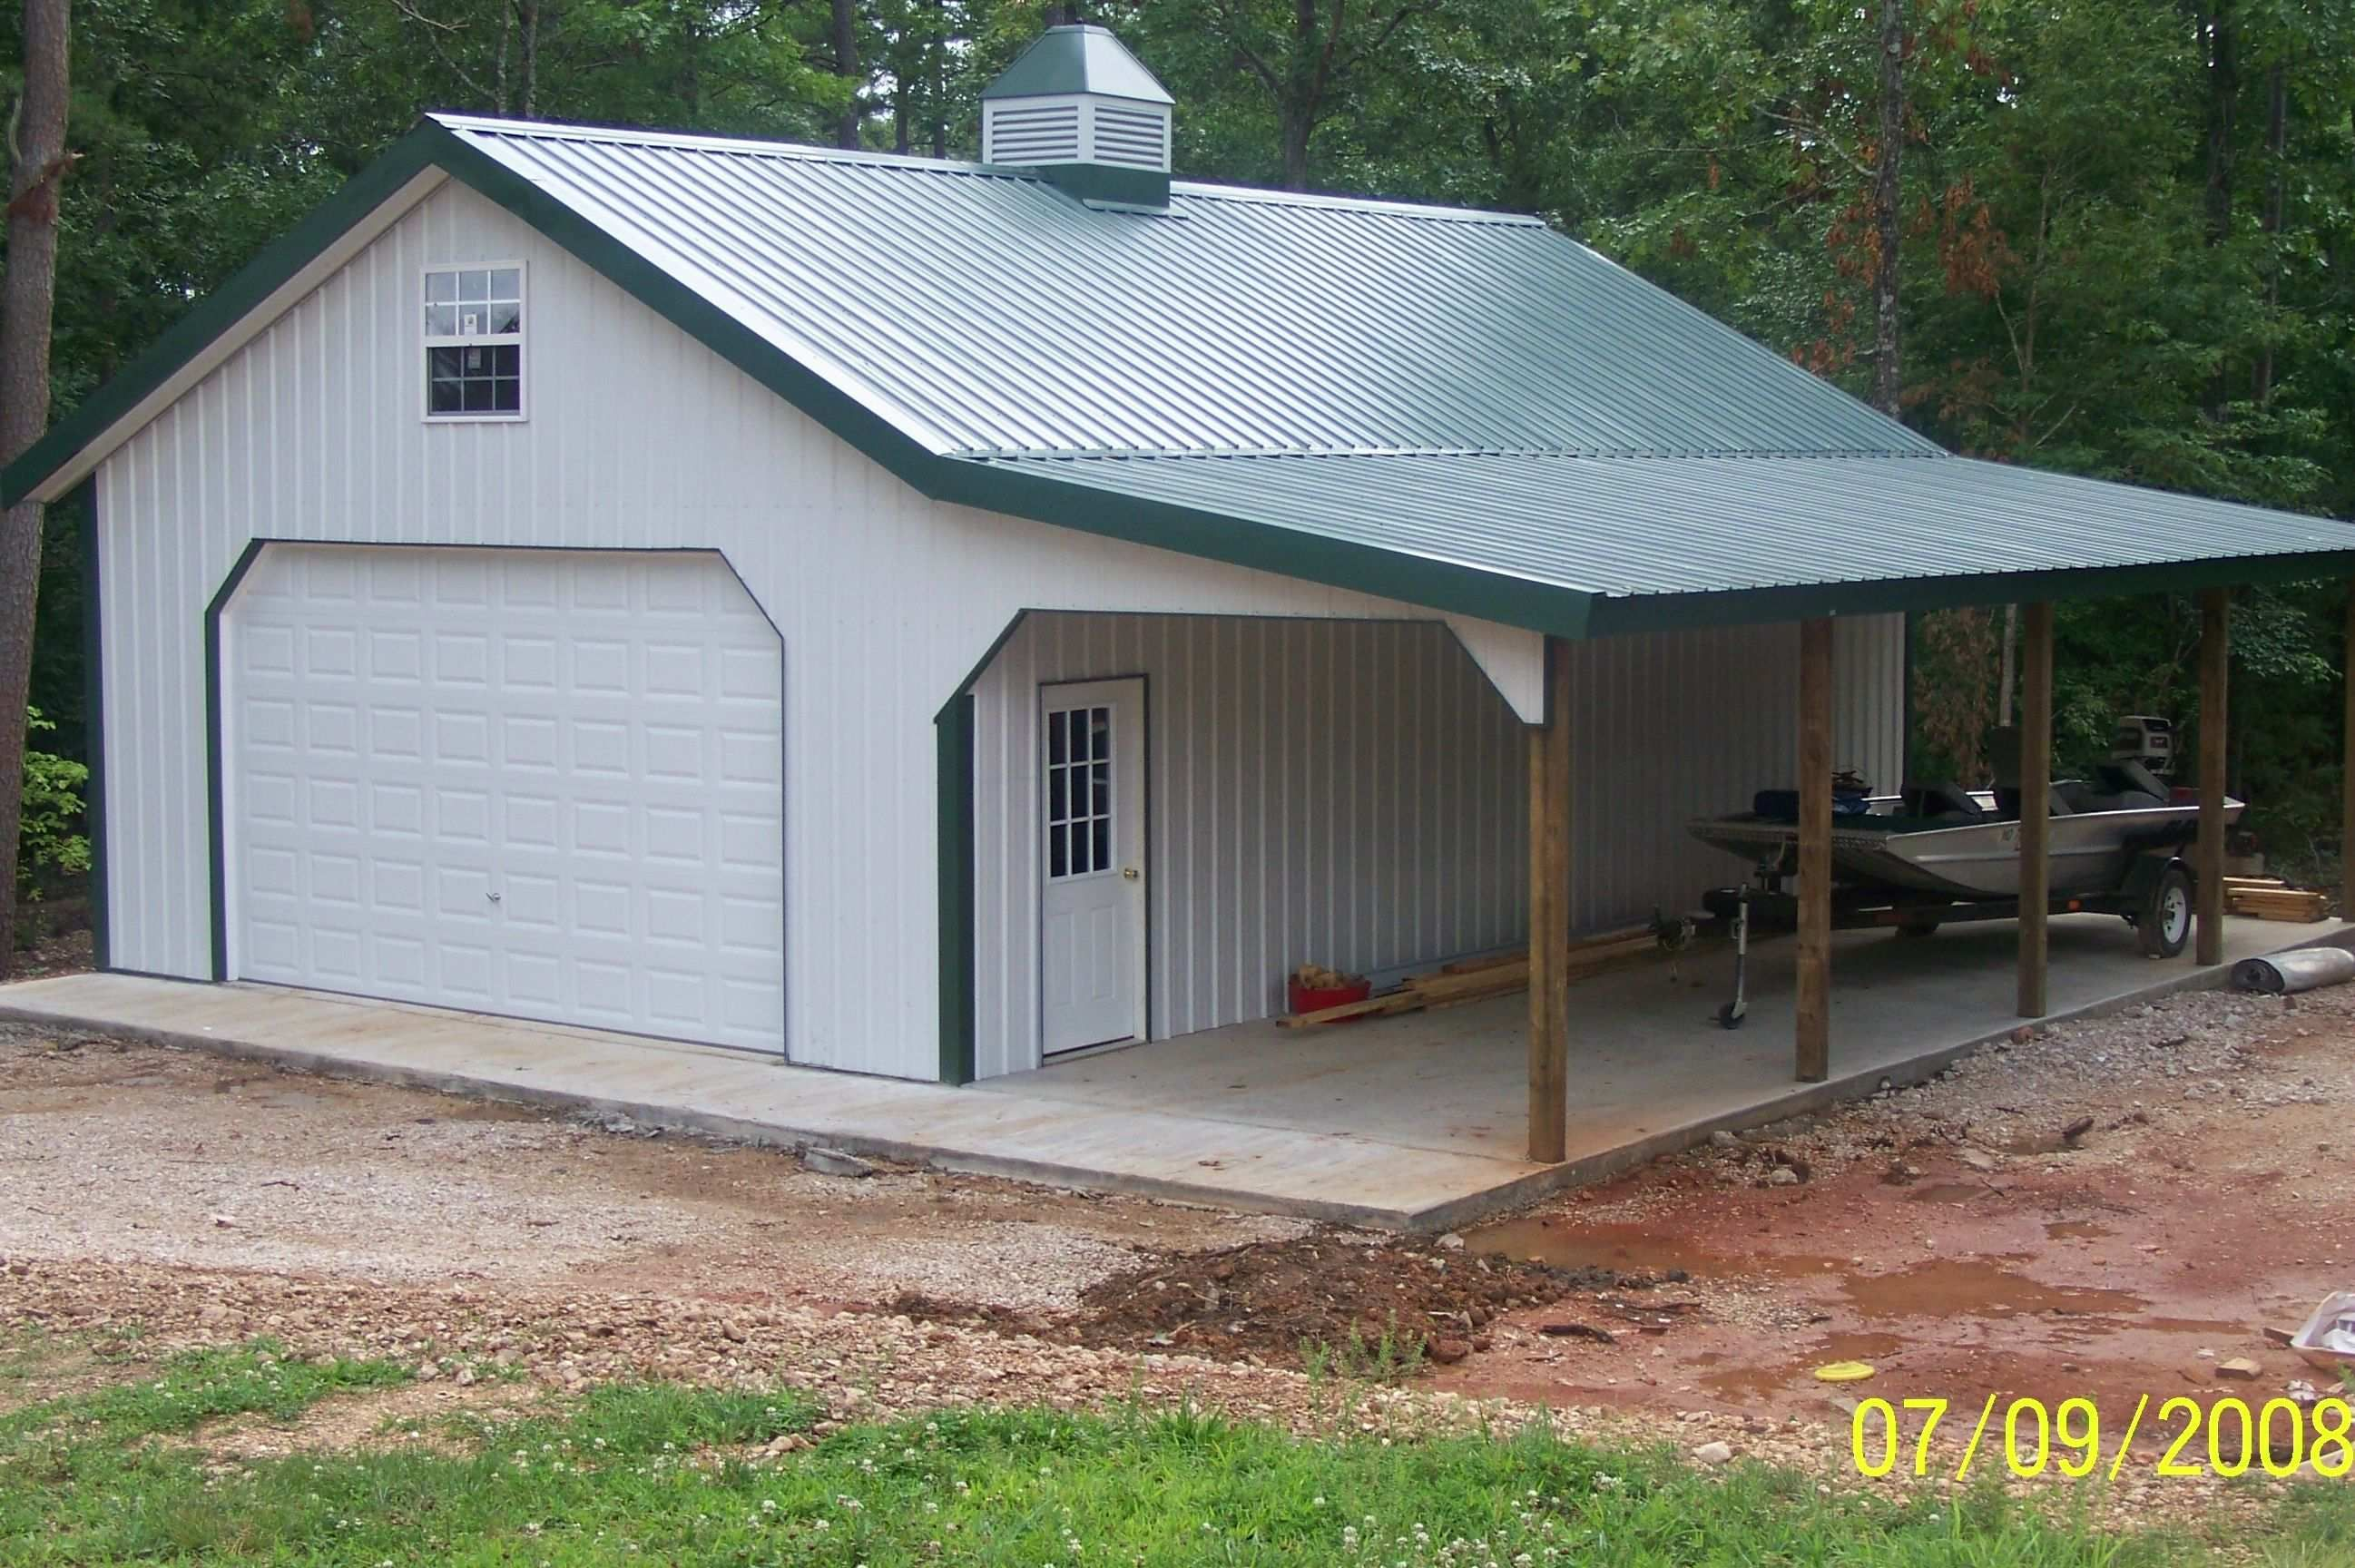 Ryan Shed Plans 12 000 Shed Plans And Designs For Easy Shed Building Ryanshedplans Building A Pole Barn Metal Building Homes Pole Barn Designs